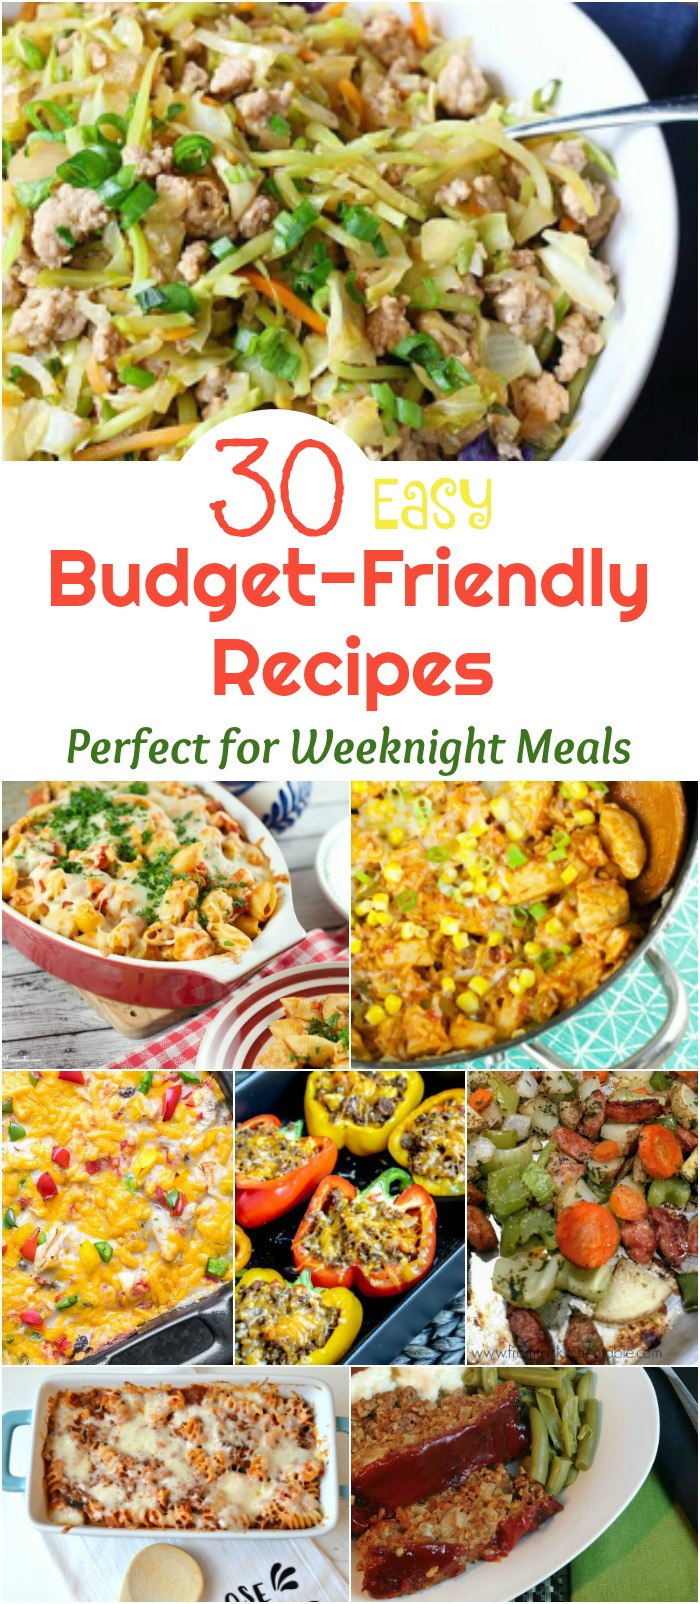 30 Easy Budget-Friendly Recipes Perfect for Weeknight Meals